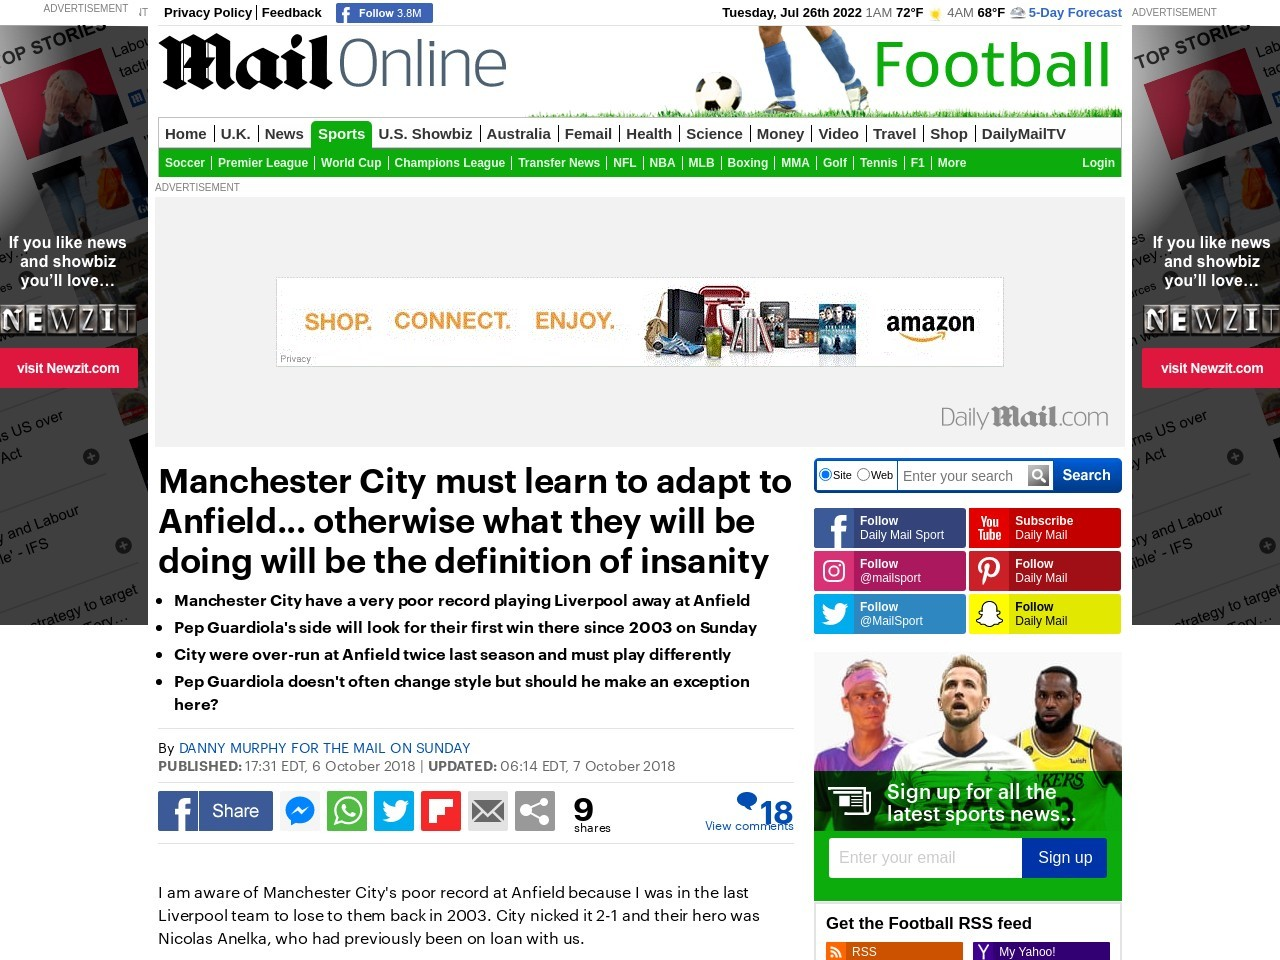 DANNY MURPHY: Manchester City must learn to adapt to Anfield